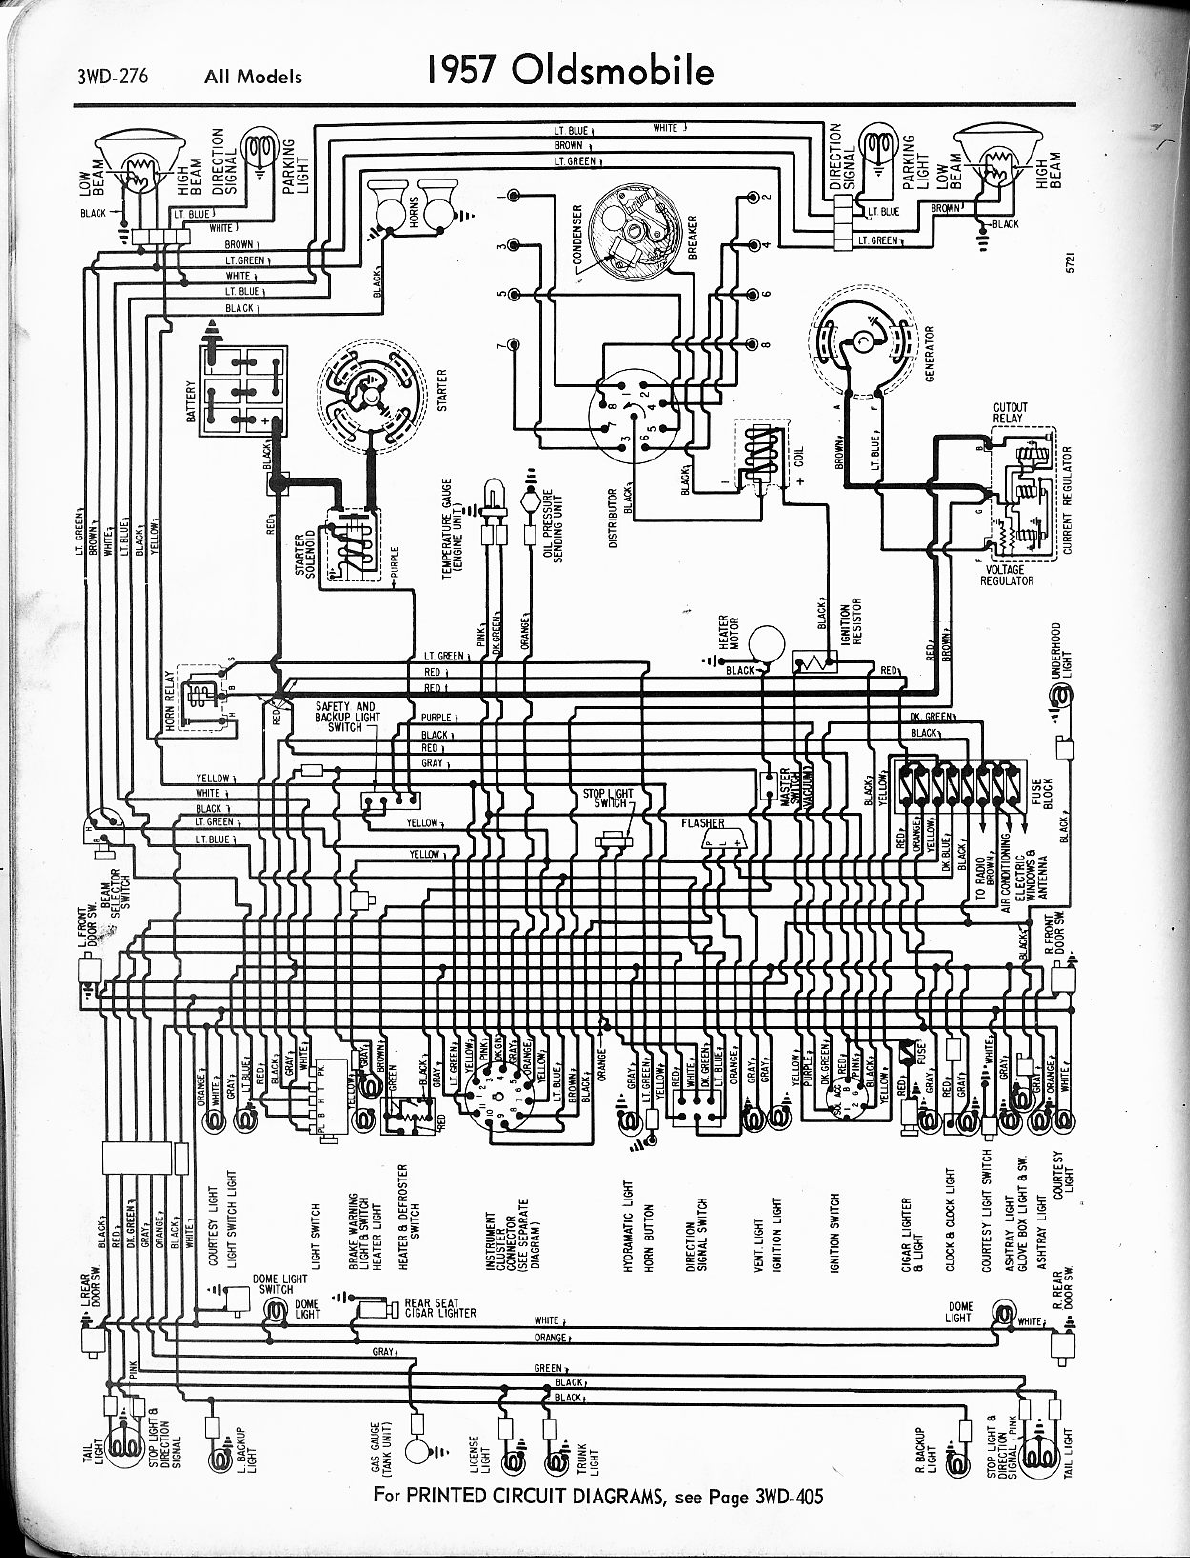 oldsmobile sillhouette 1957 1960 misc documents wiring diagrams pdf rh manuals co 3-Way Switch Wiring Diagram Basic Electrical Schematic Diagrams